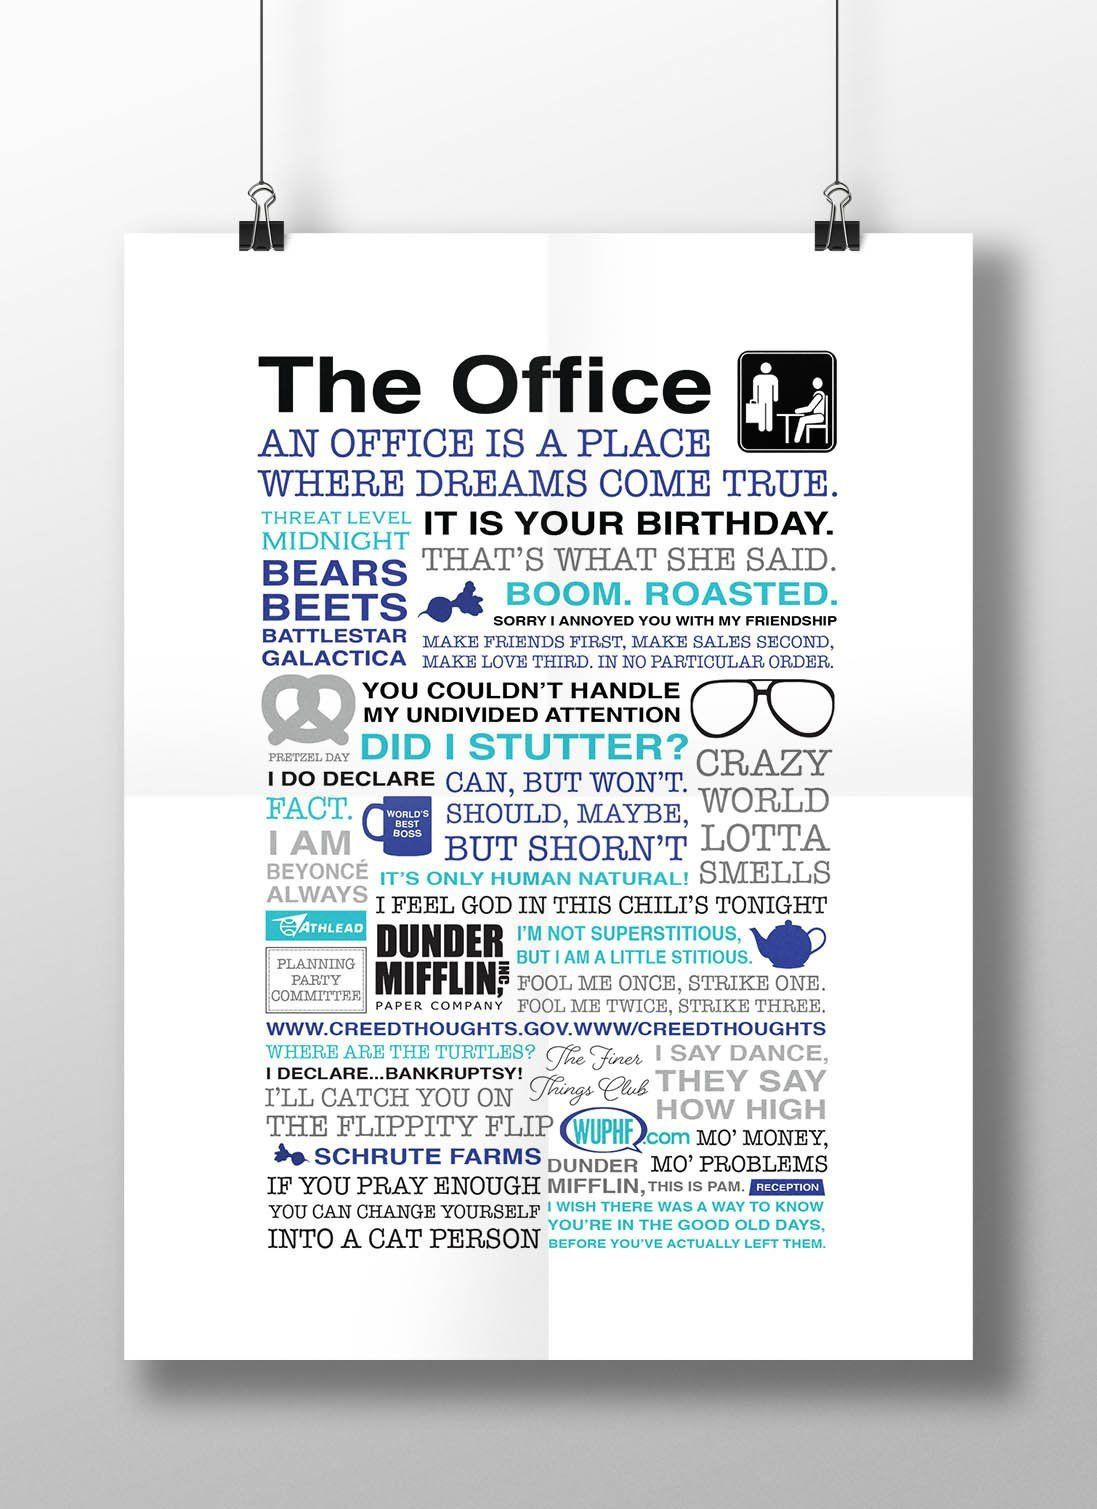 The Office Show Poster The Office Show Office Room Decor The Office